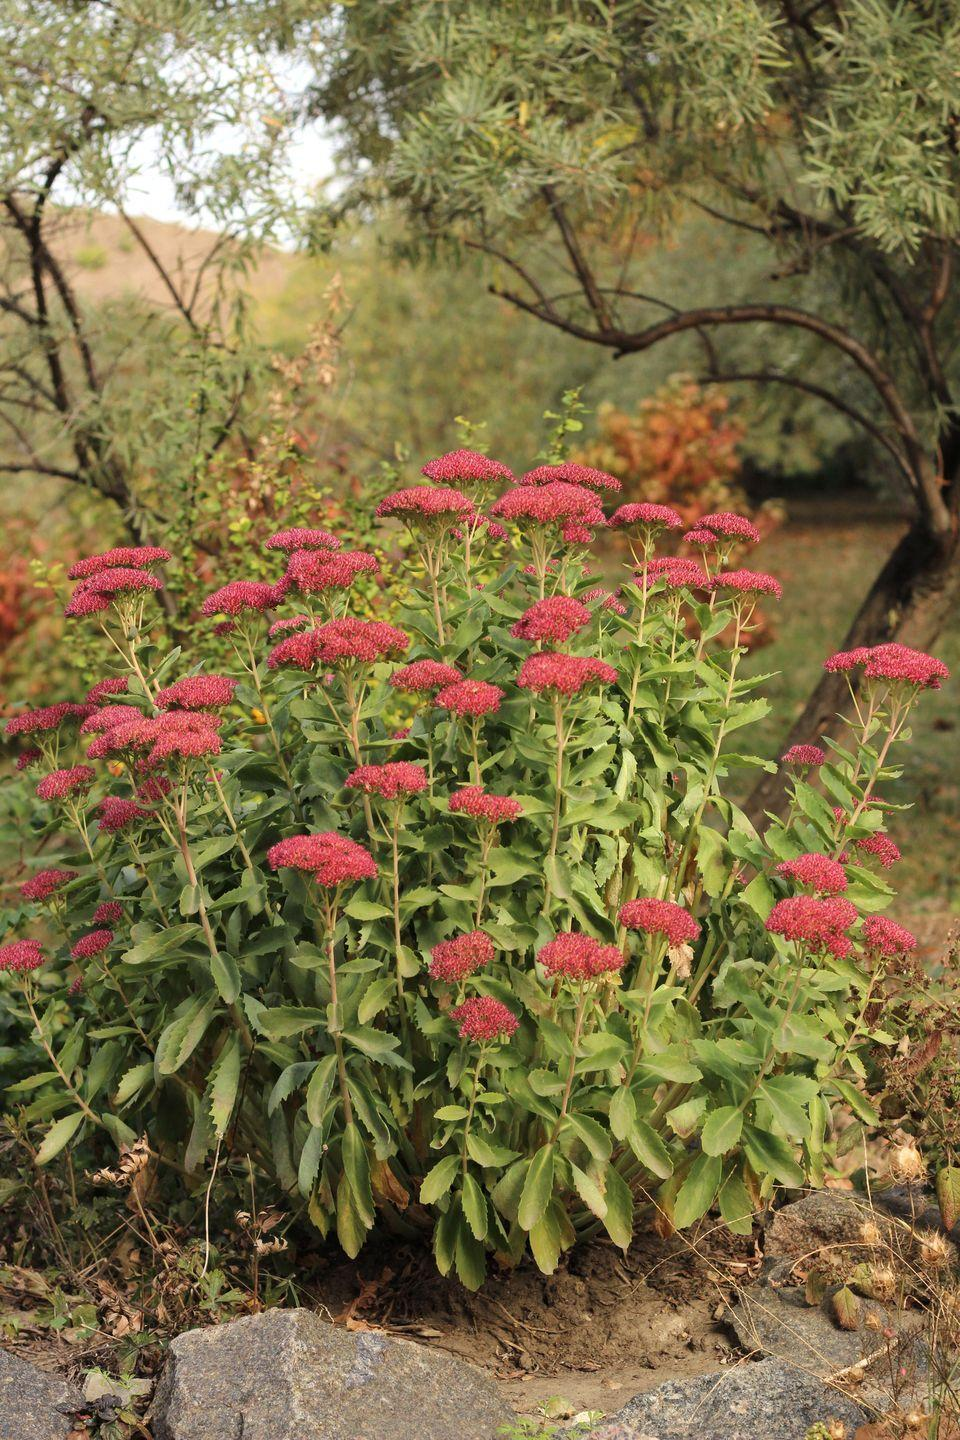 """<p>These vibrant stems—which also bloom in a pretty purple or pink hues—will brighten up every chilly day. Binetti adds that the tall plant """"attracts butterflies and bees and is a great pollinator.""""</p><p><strong>Zones: 3-9</strong></p>"""